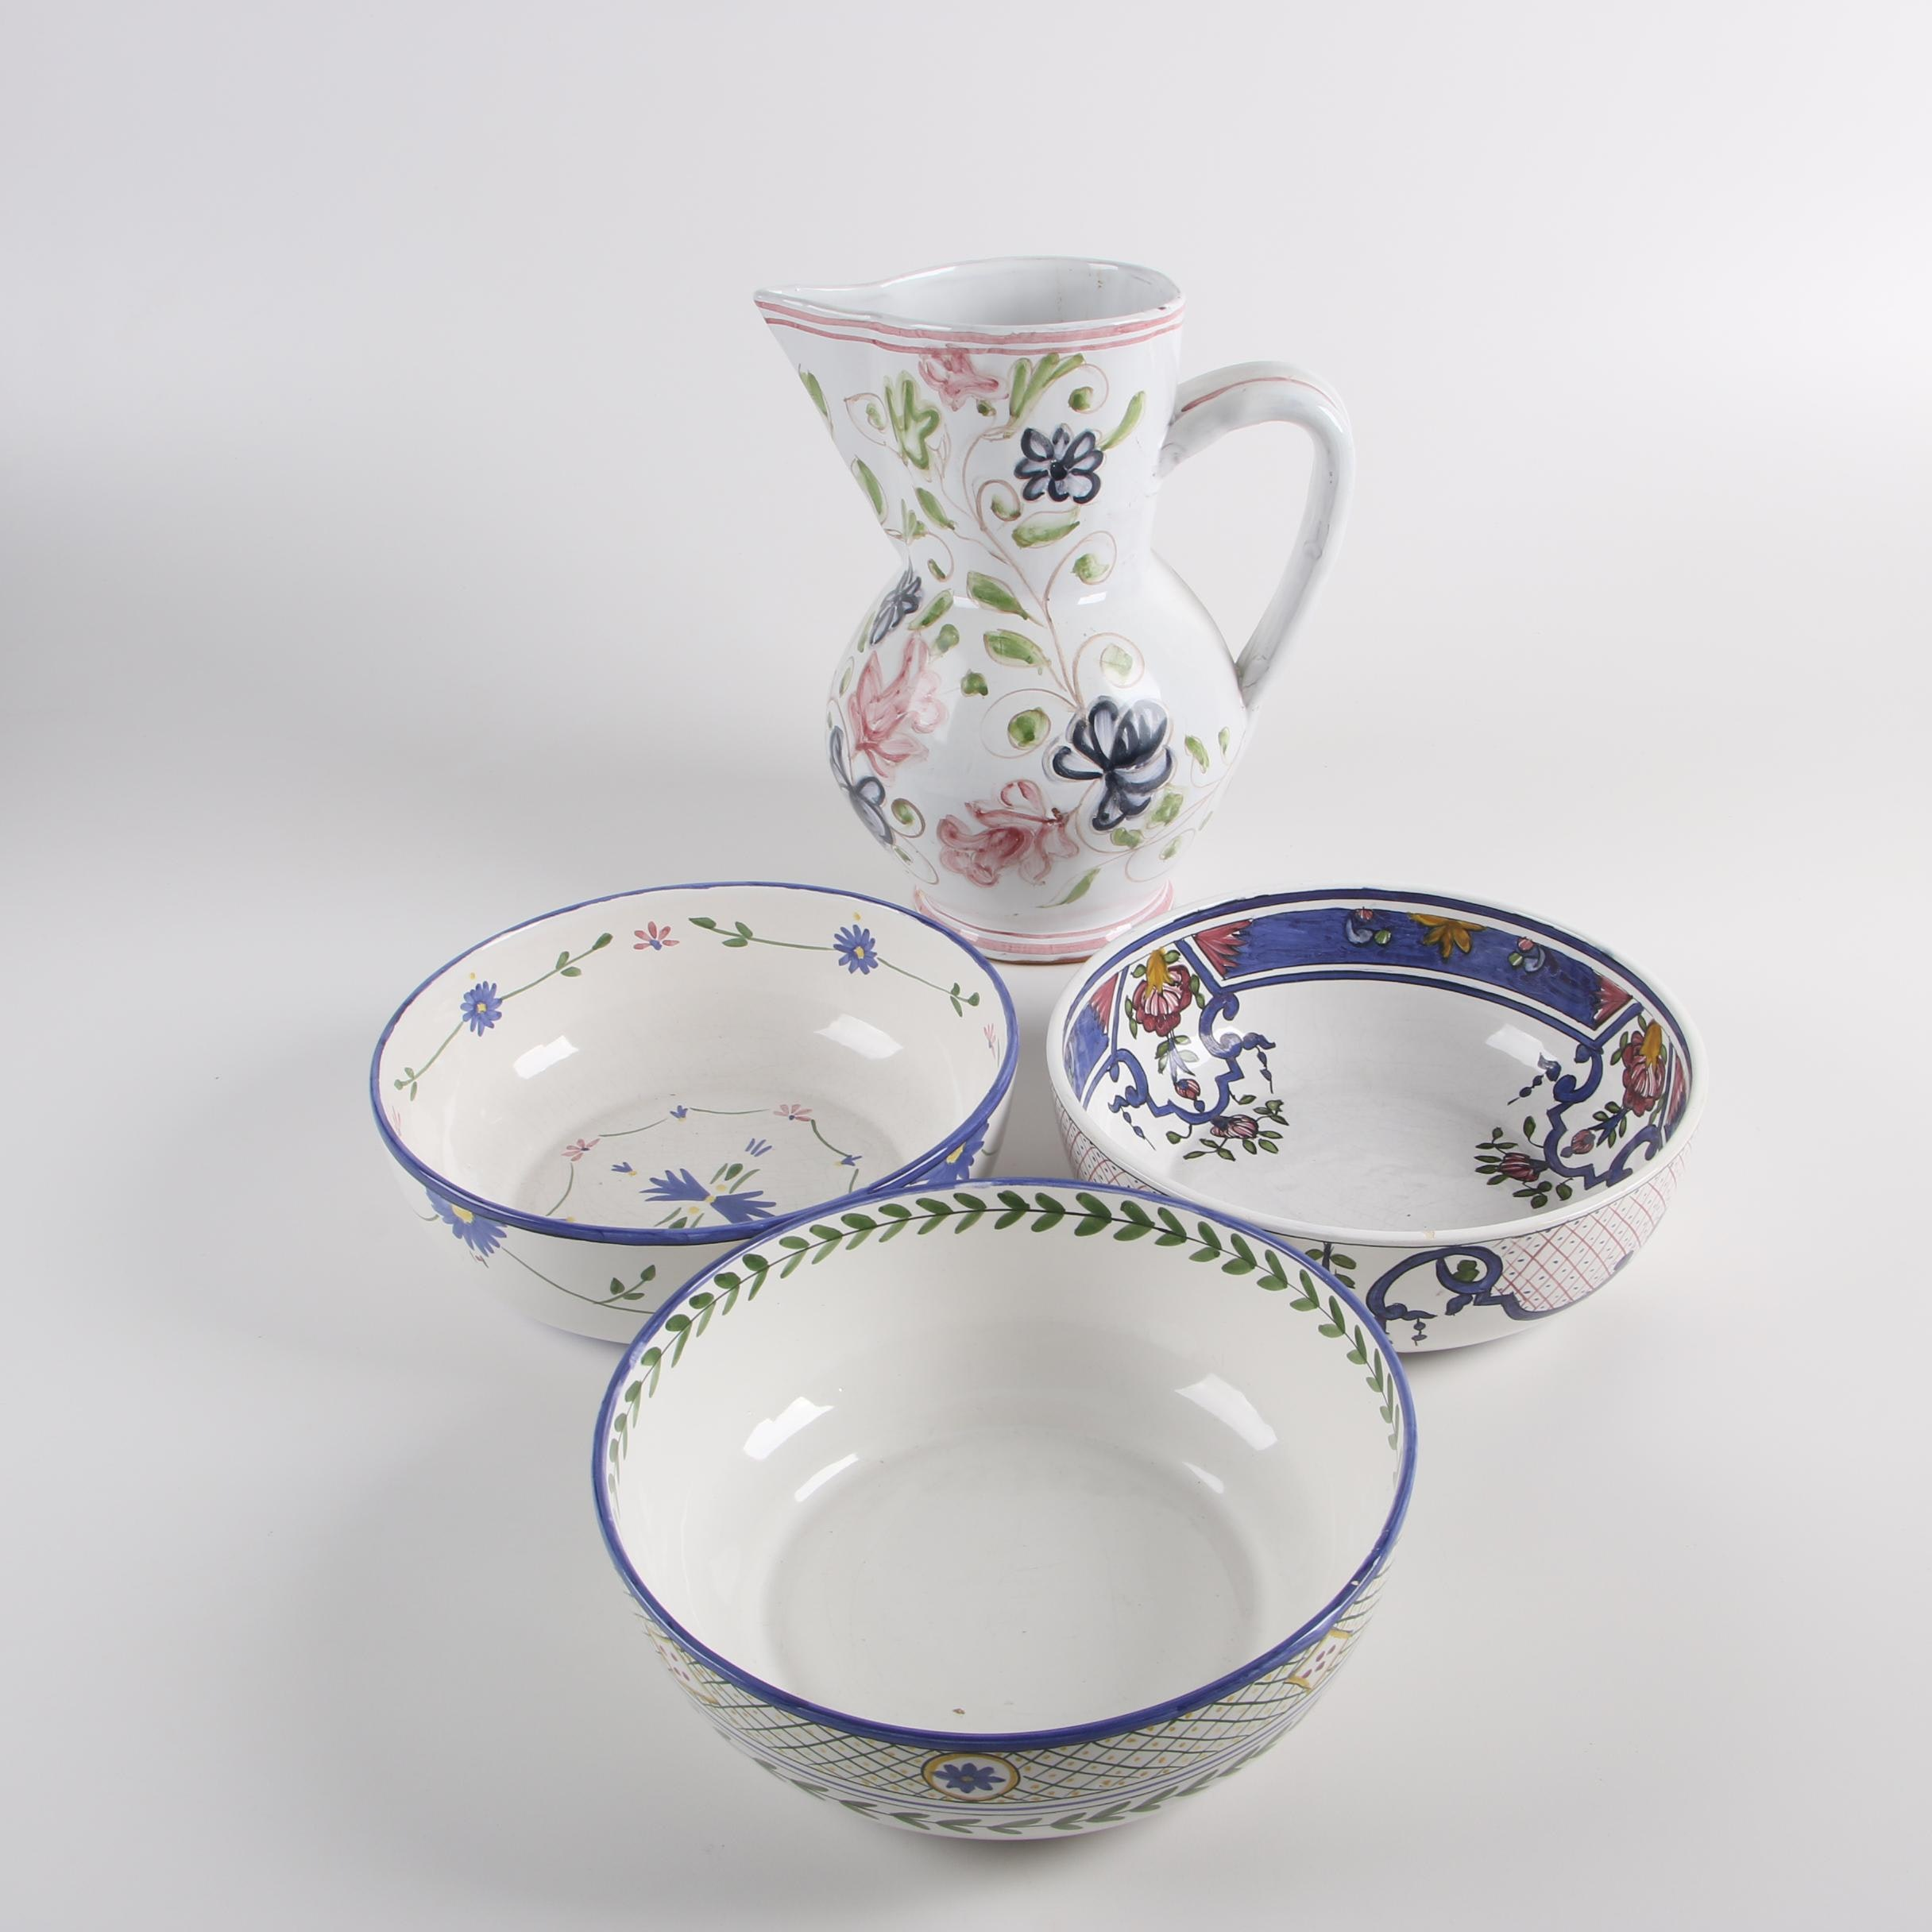 Portuguese Hand-Painted Serving Bowls and Pitcher Including Casafina